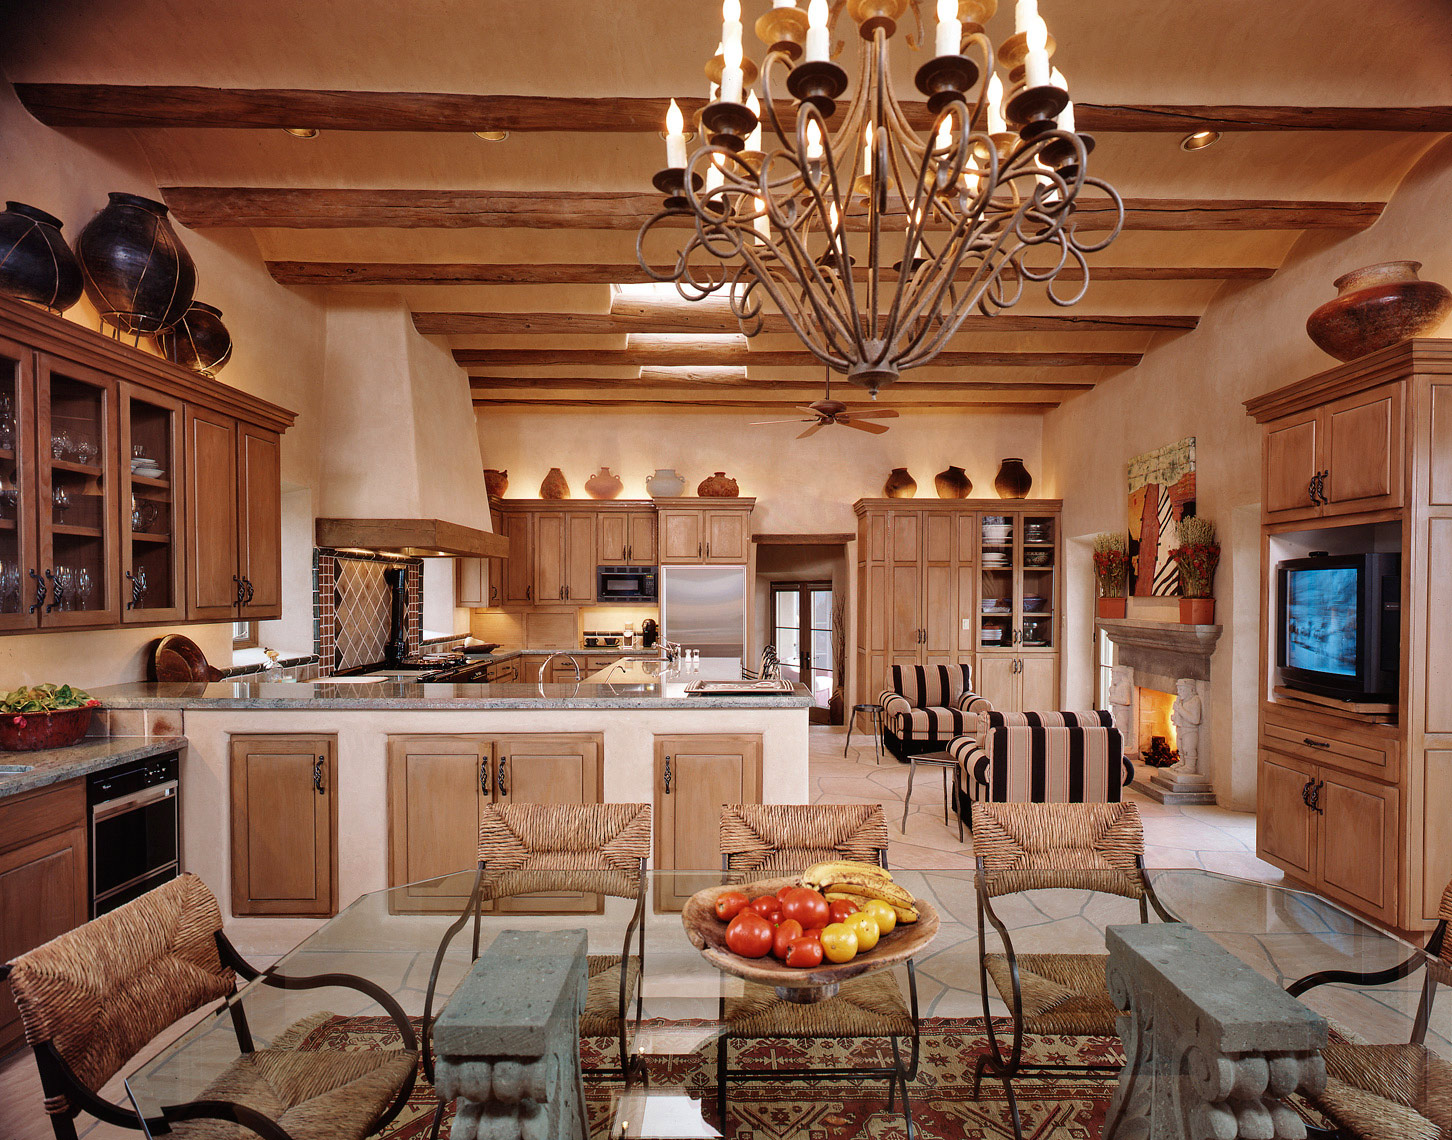 davidhoptman_interior-photo-12a_kitchen_santafe1